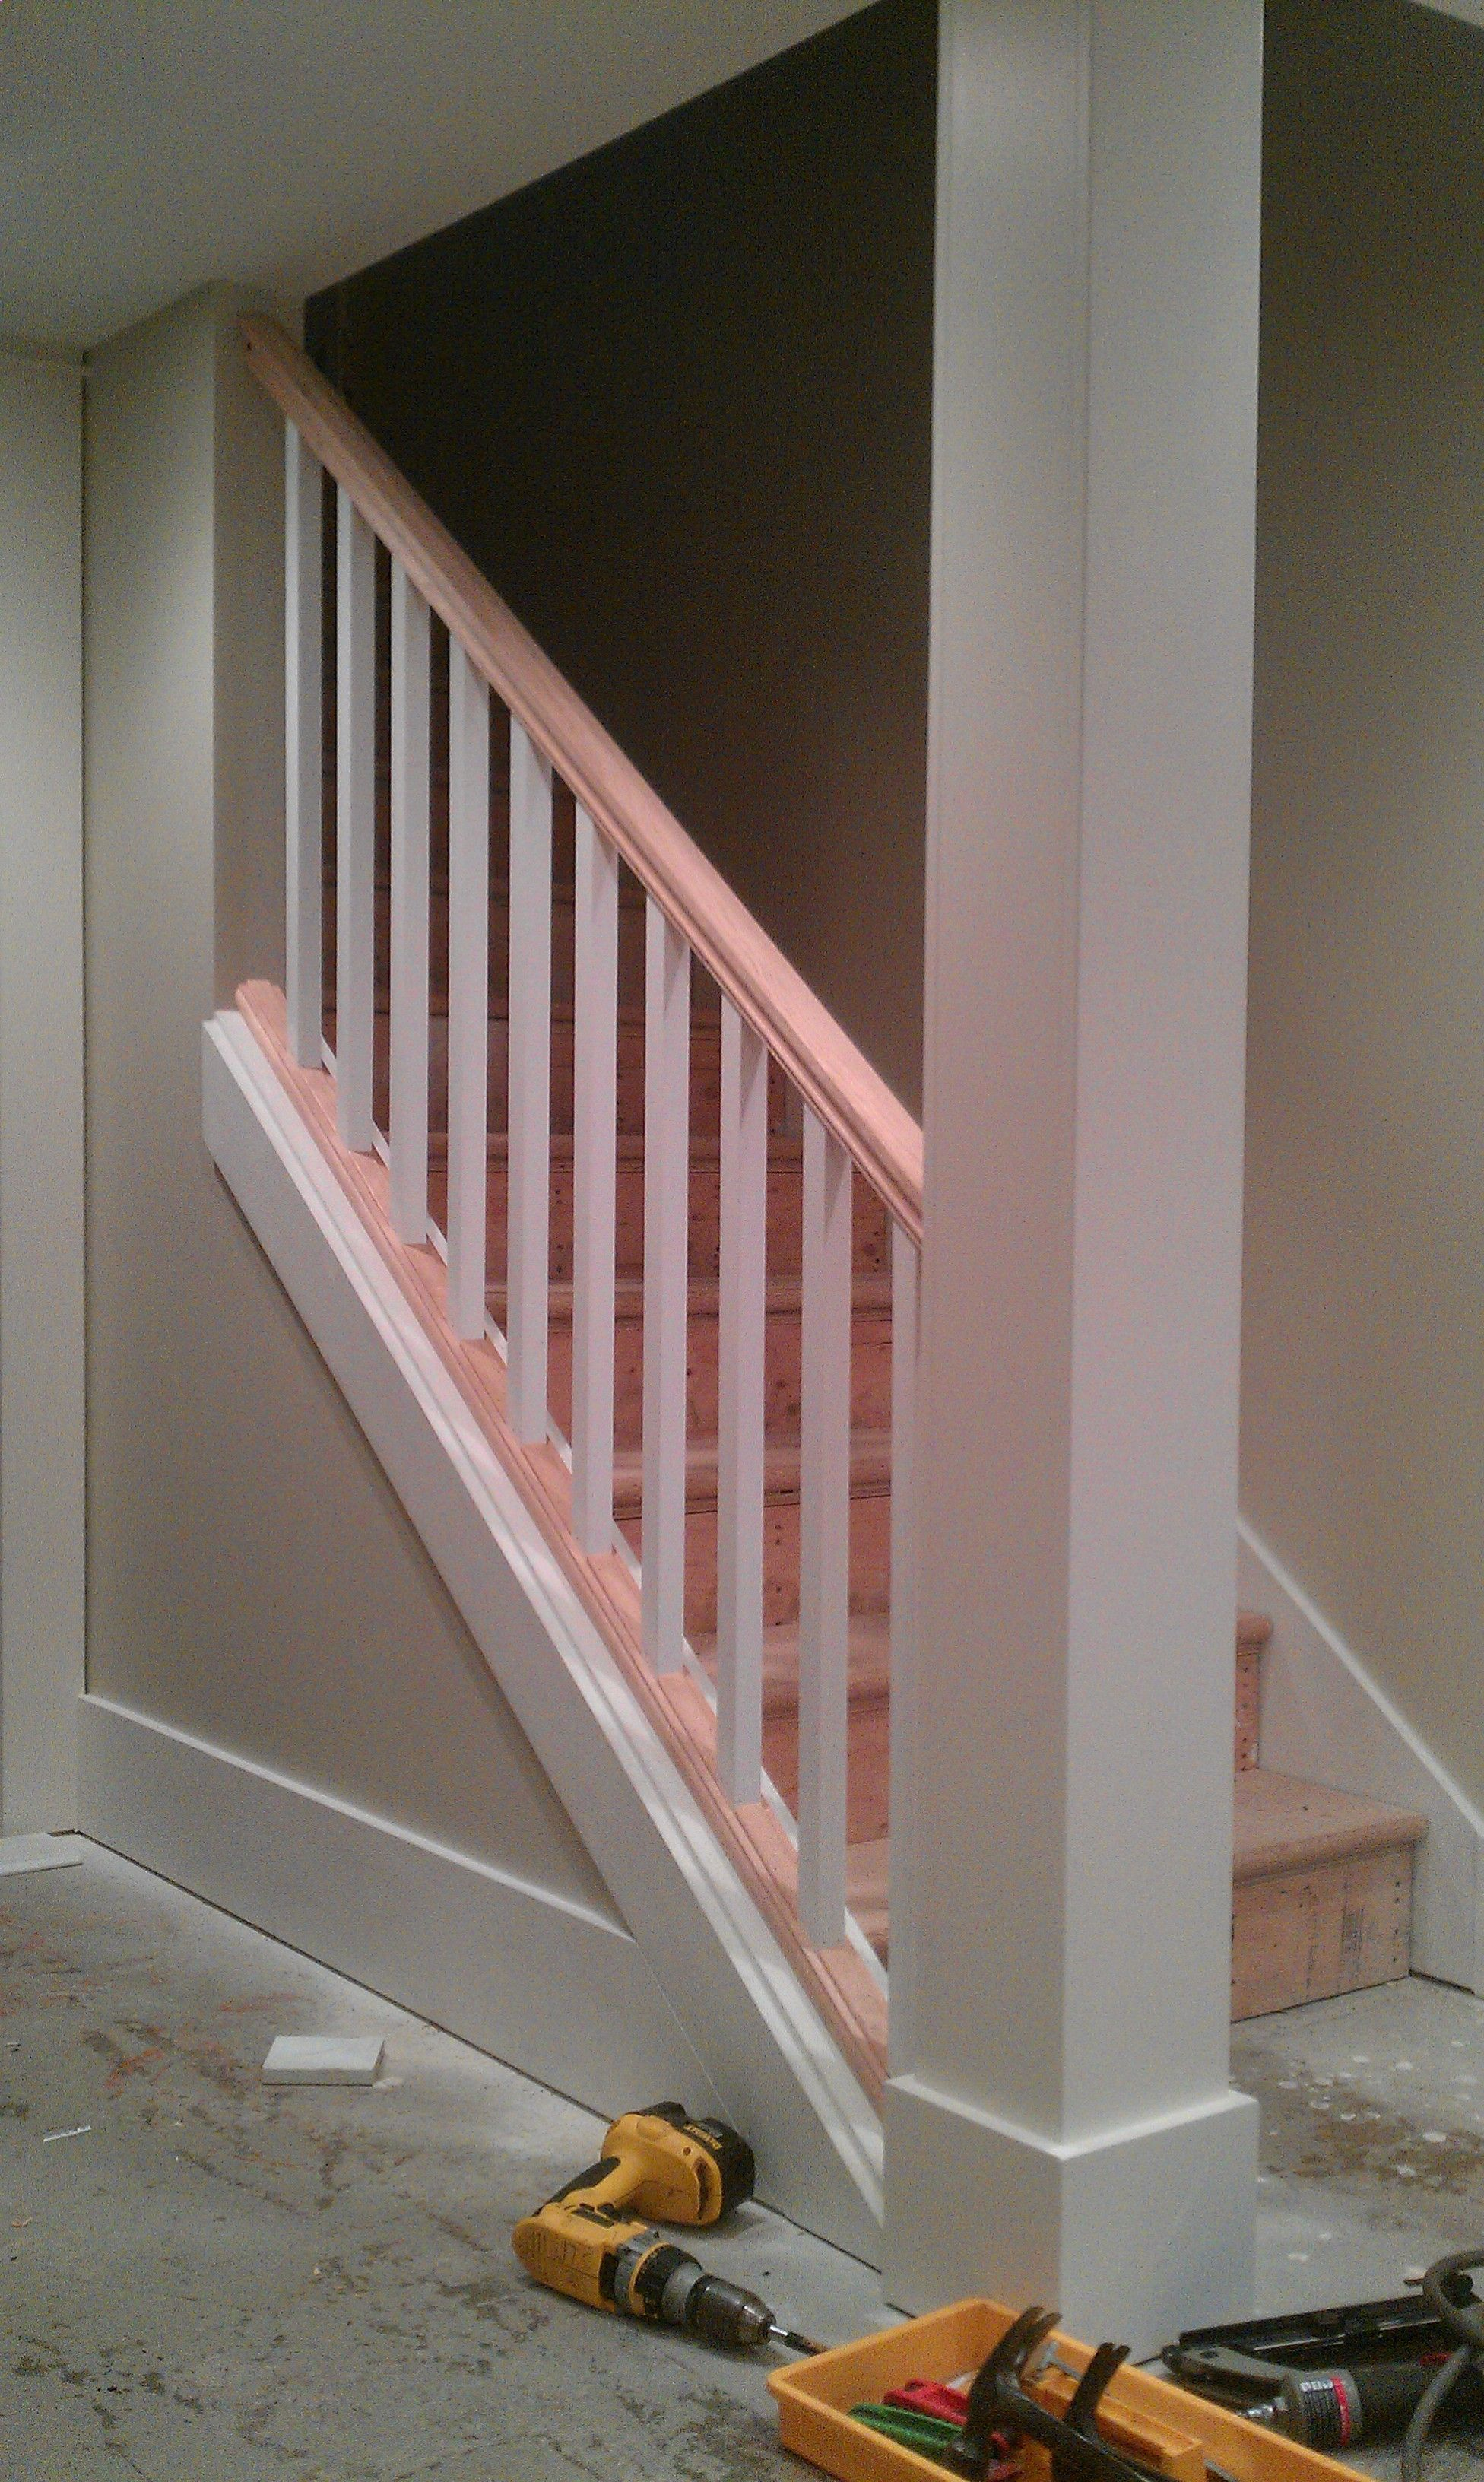 Basement Stair Removing Part Of The Wall And Replacing It With Spindles And Handrail Makes T Basement Staircase Basement Remodeling Basement Remodeling Plans